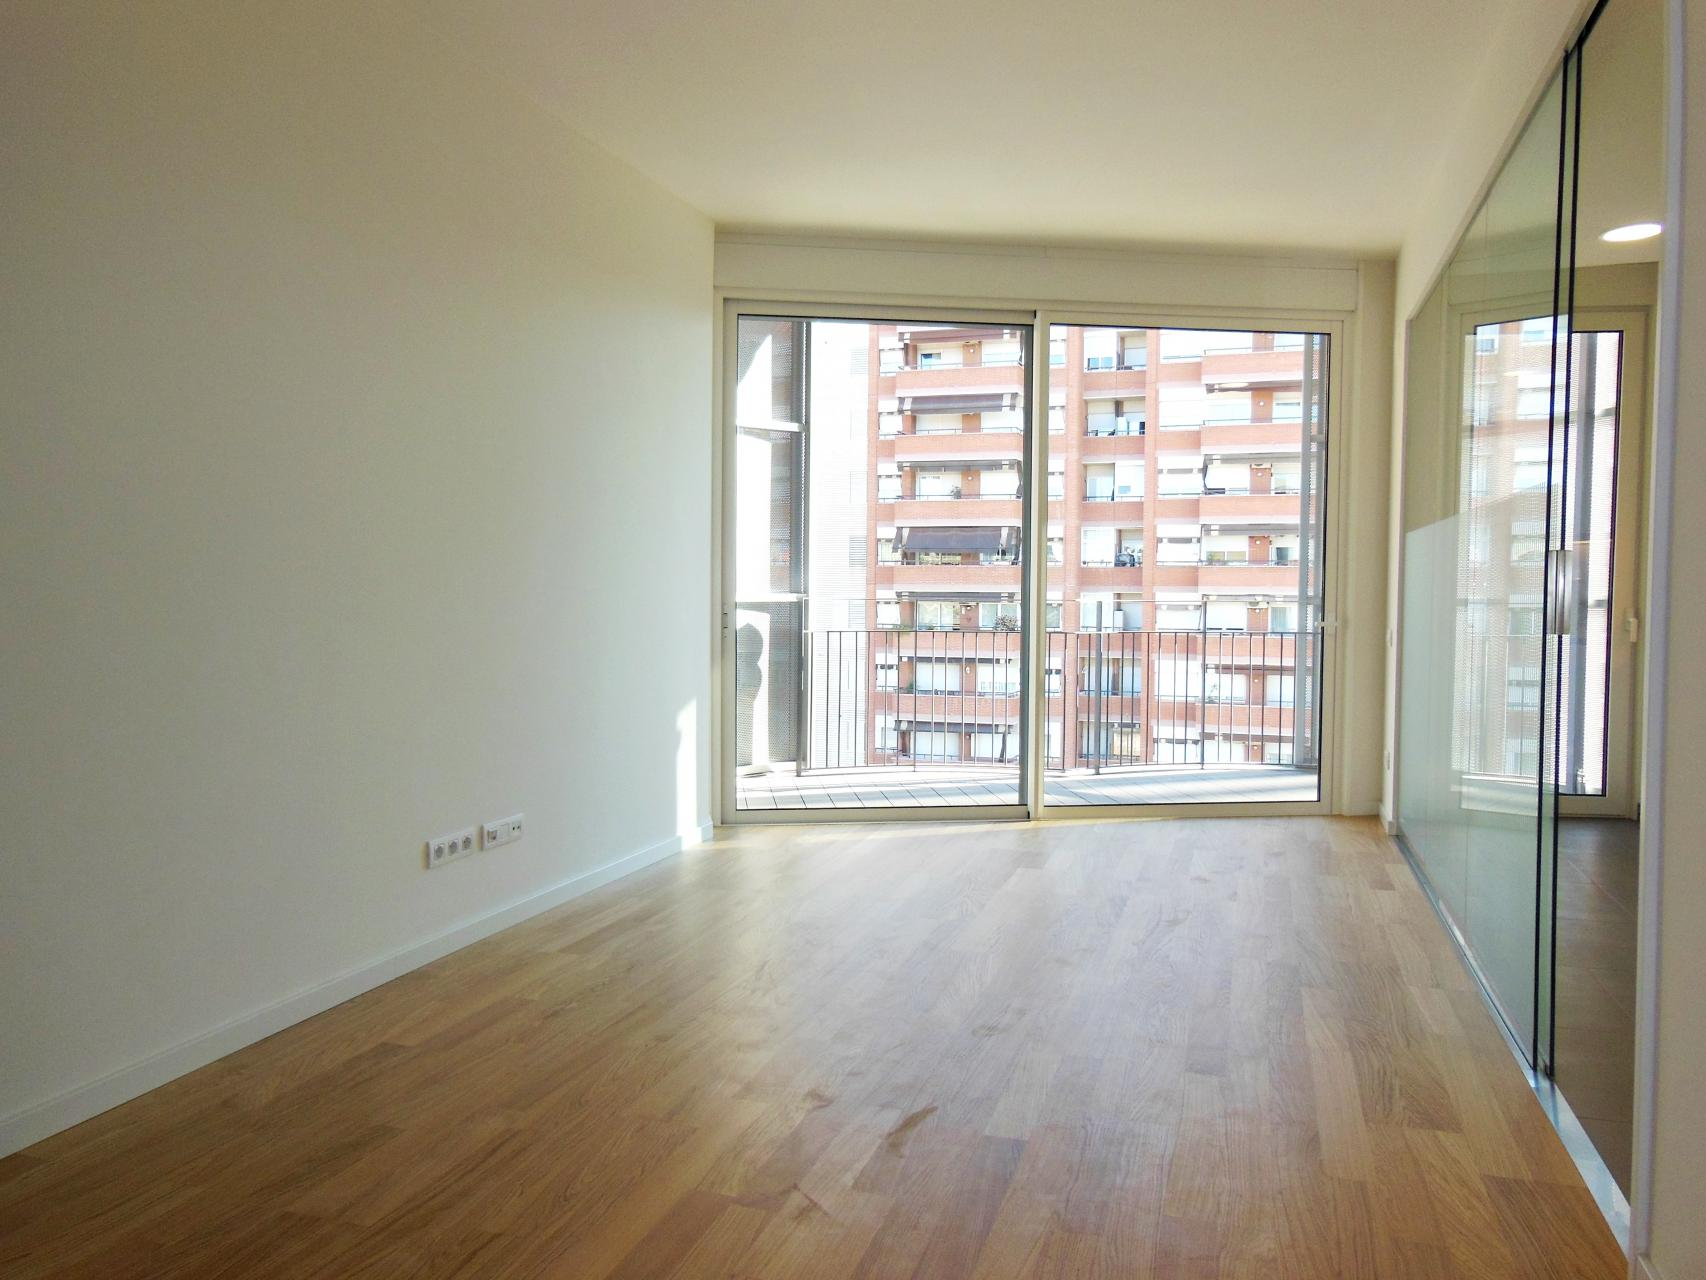 Piso en alquiler barcelona les corts cam torre melina c for Piso alquiler les corts